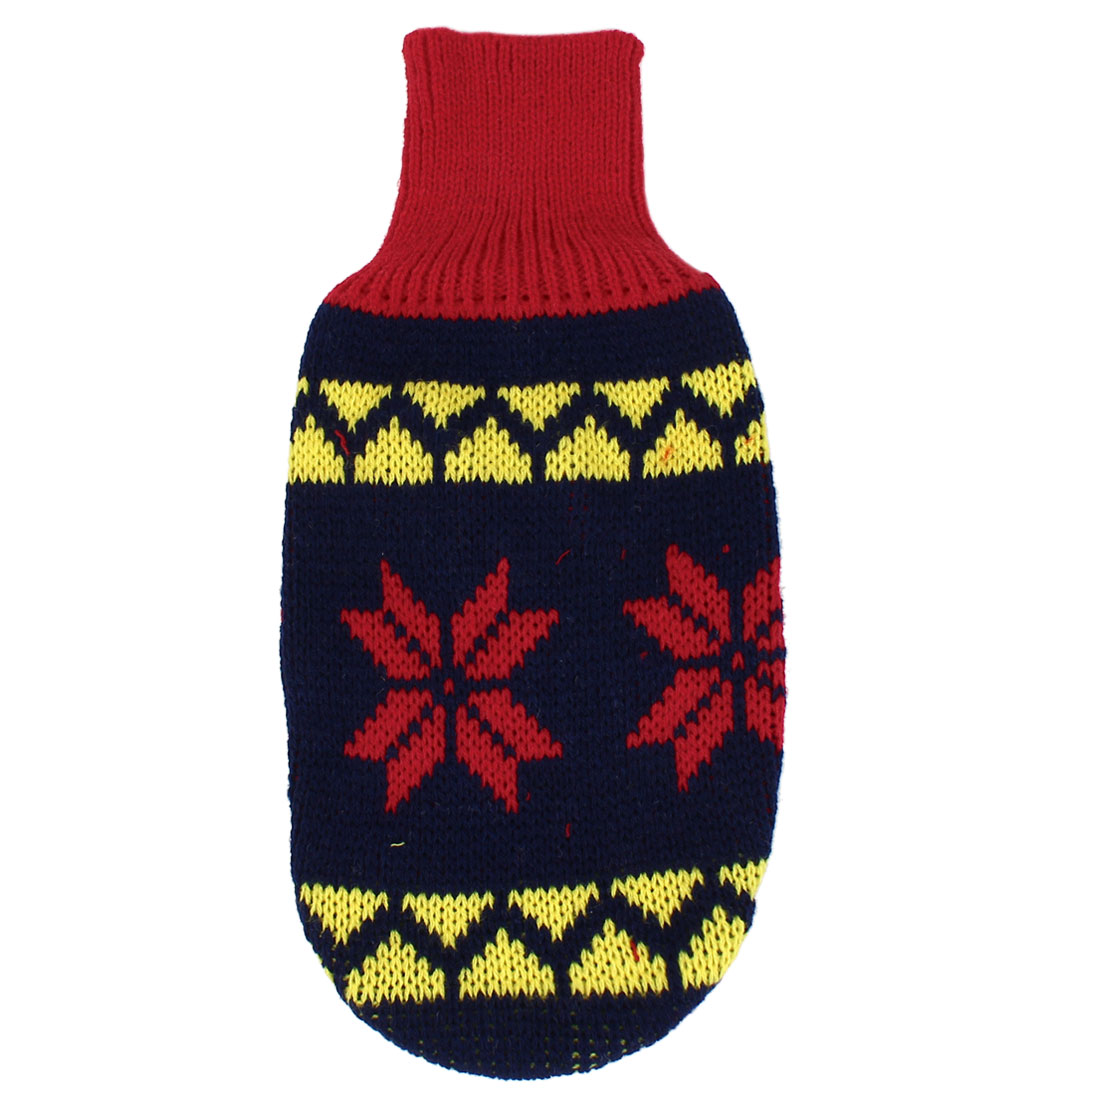 Pet Dog Puppy Ribbed Cuff Knitwear Turtleneck Apparel Sweater Dark Blue Red Yellow Size S